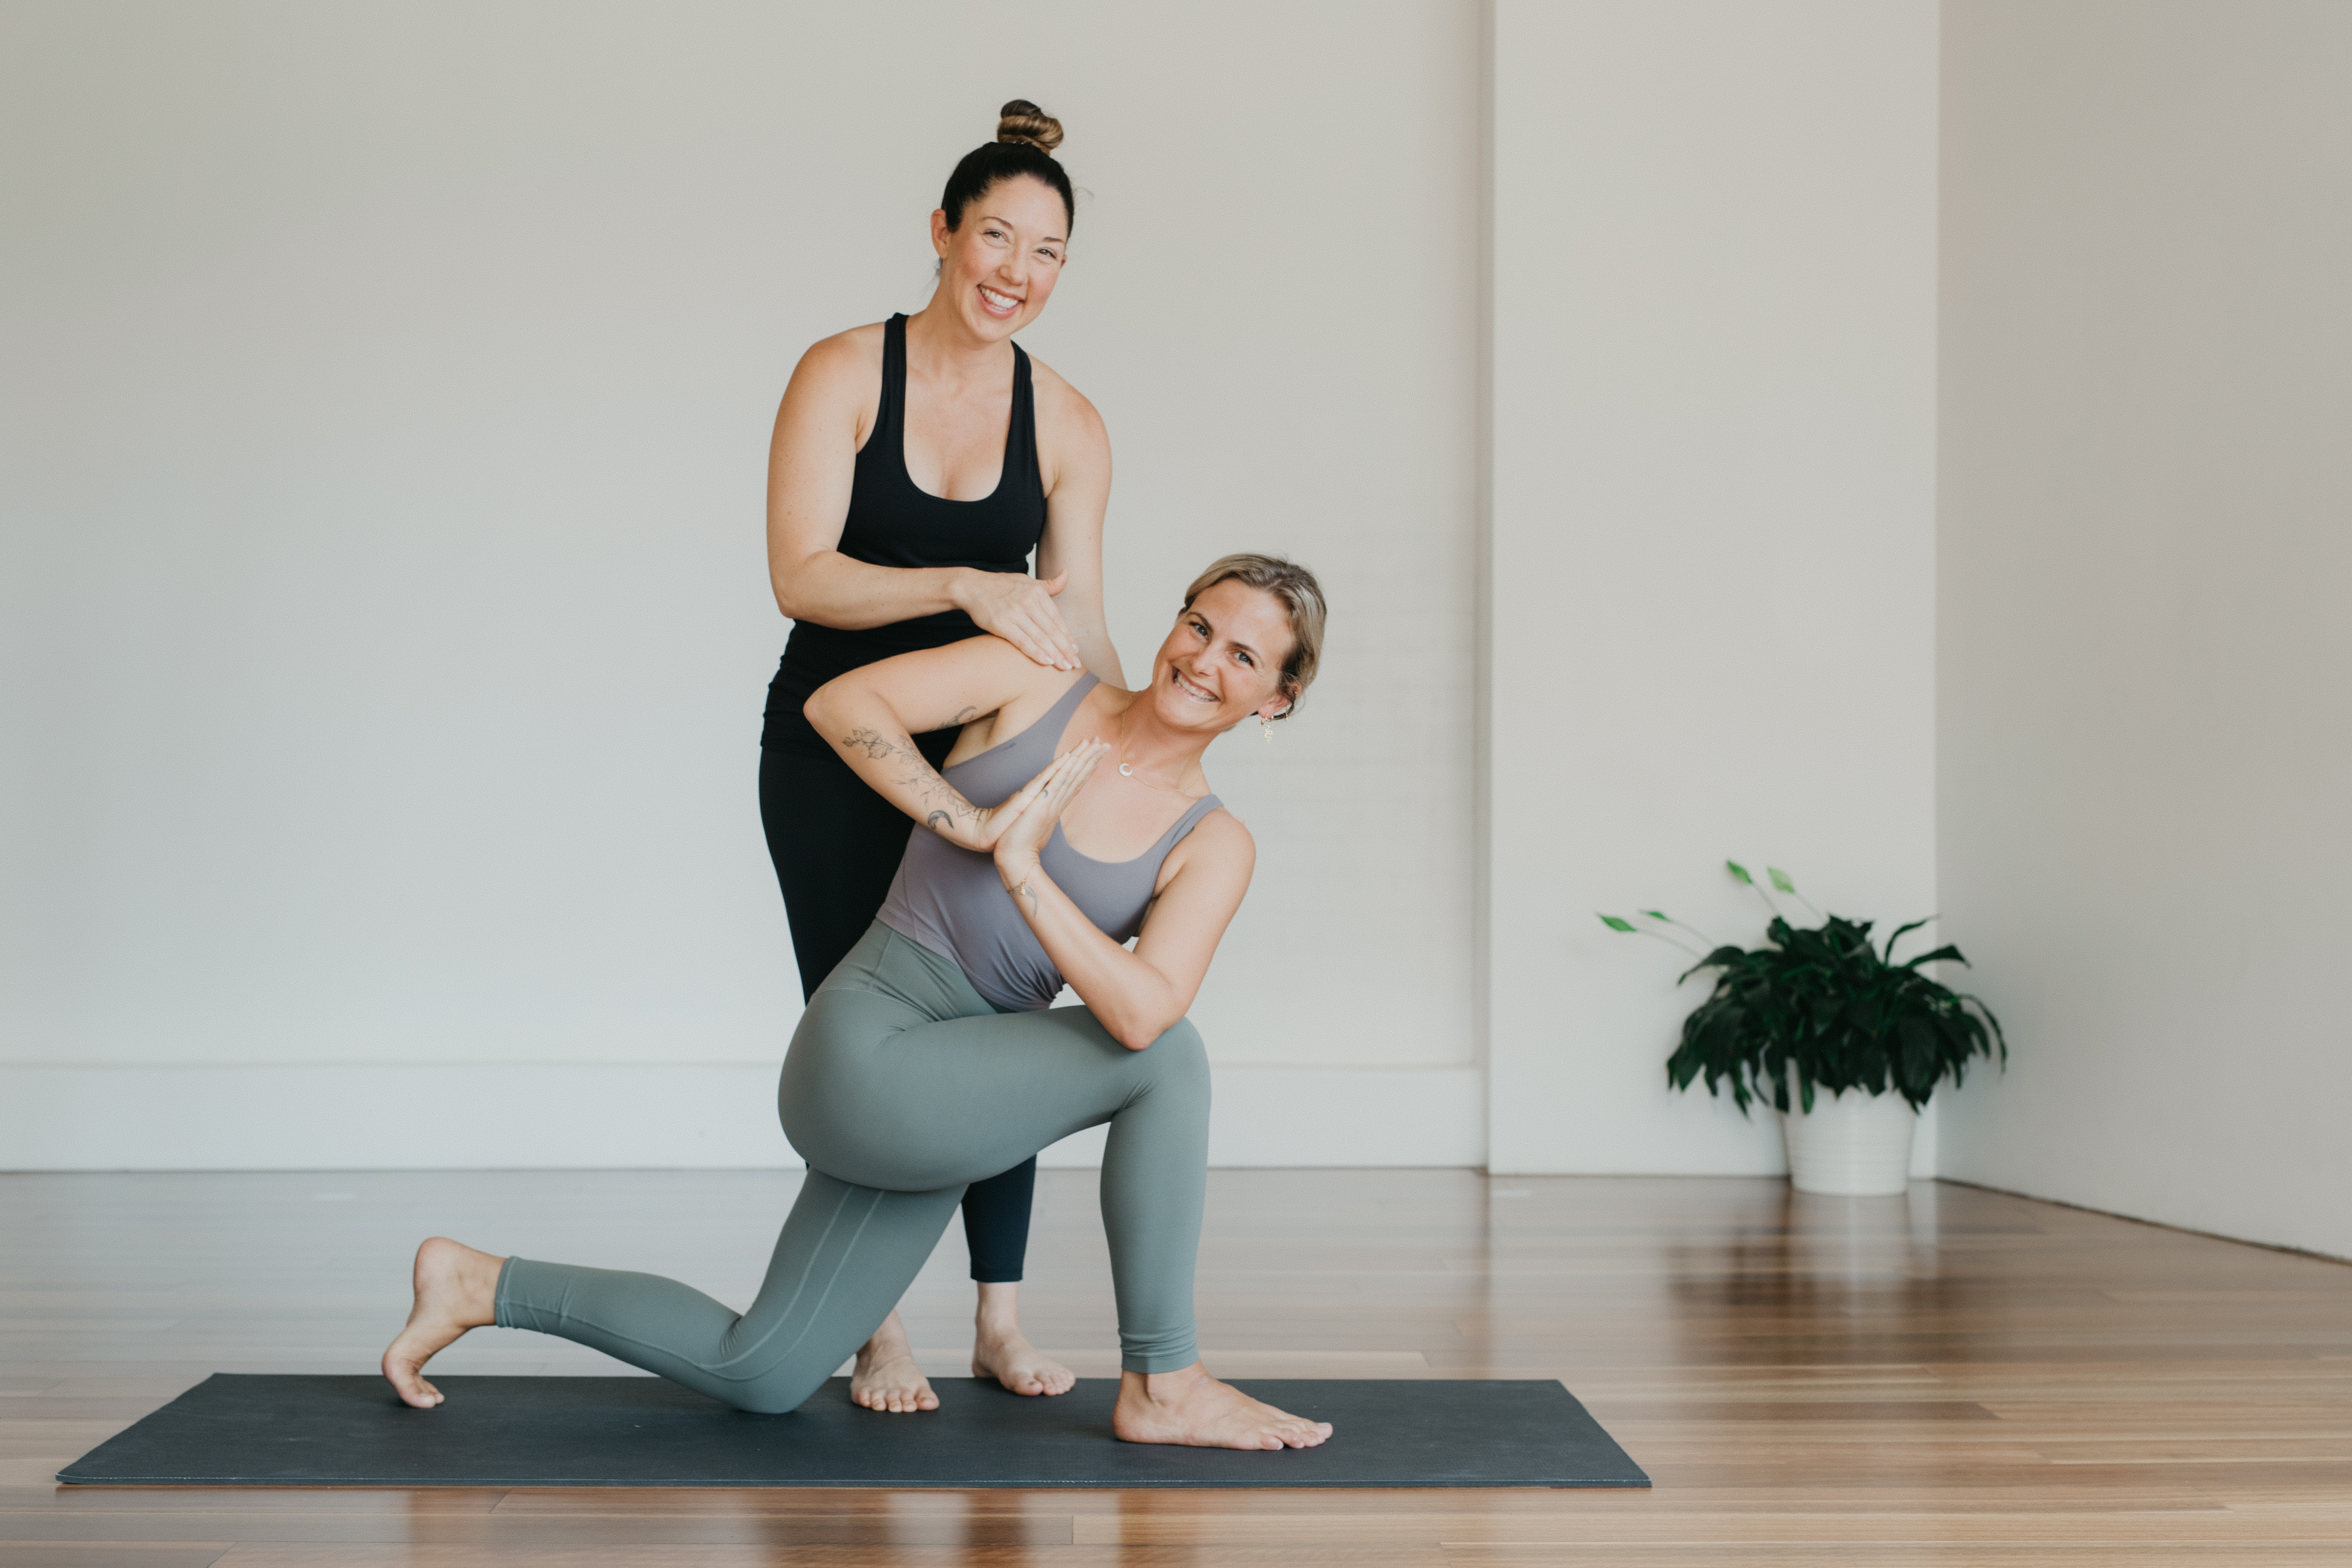 How To Look After Your Body And Modify Your Practice During Your Pregnancy